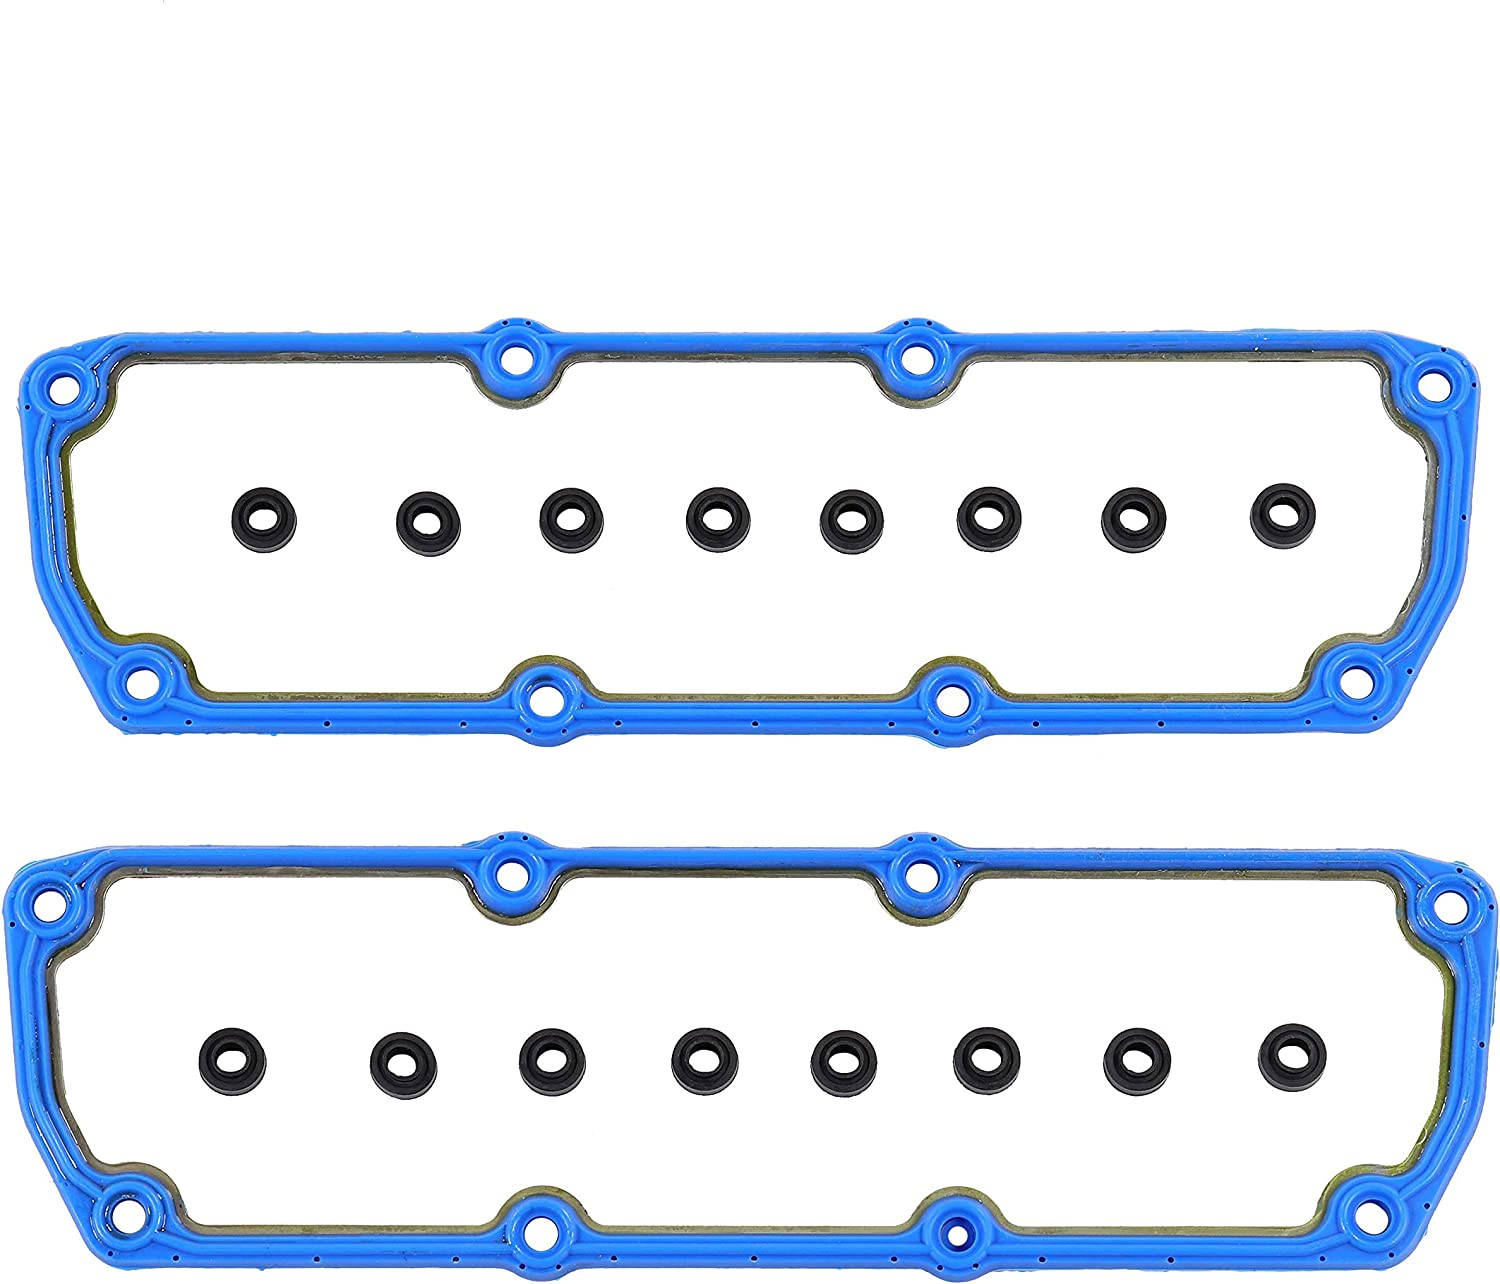 Valve Cover Gasket For 2001-2004 Chrysler Town /& Country 3.3L 3.8L w// Grommets